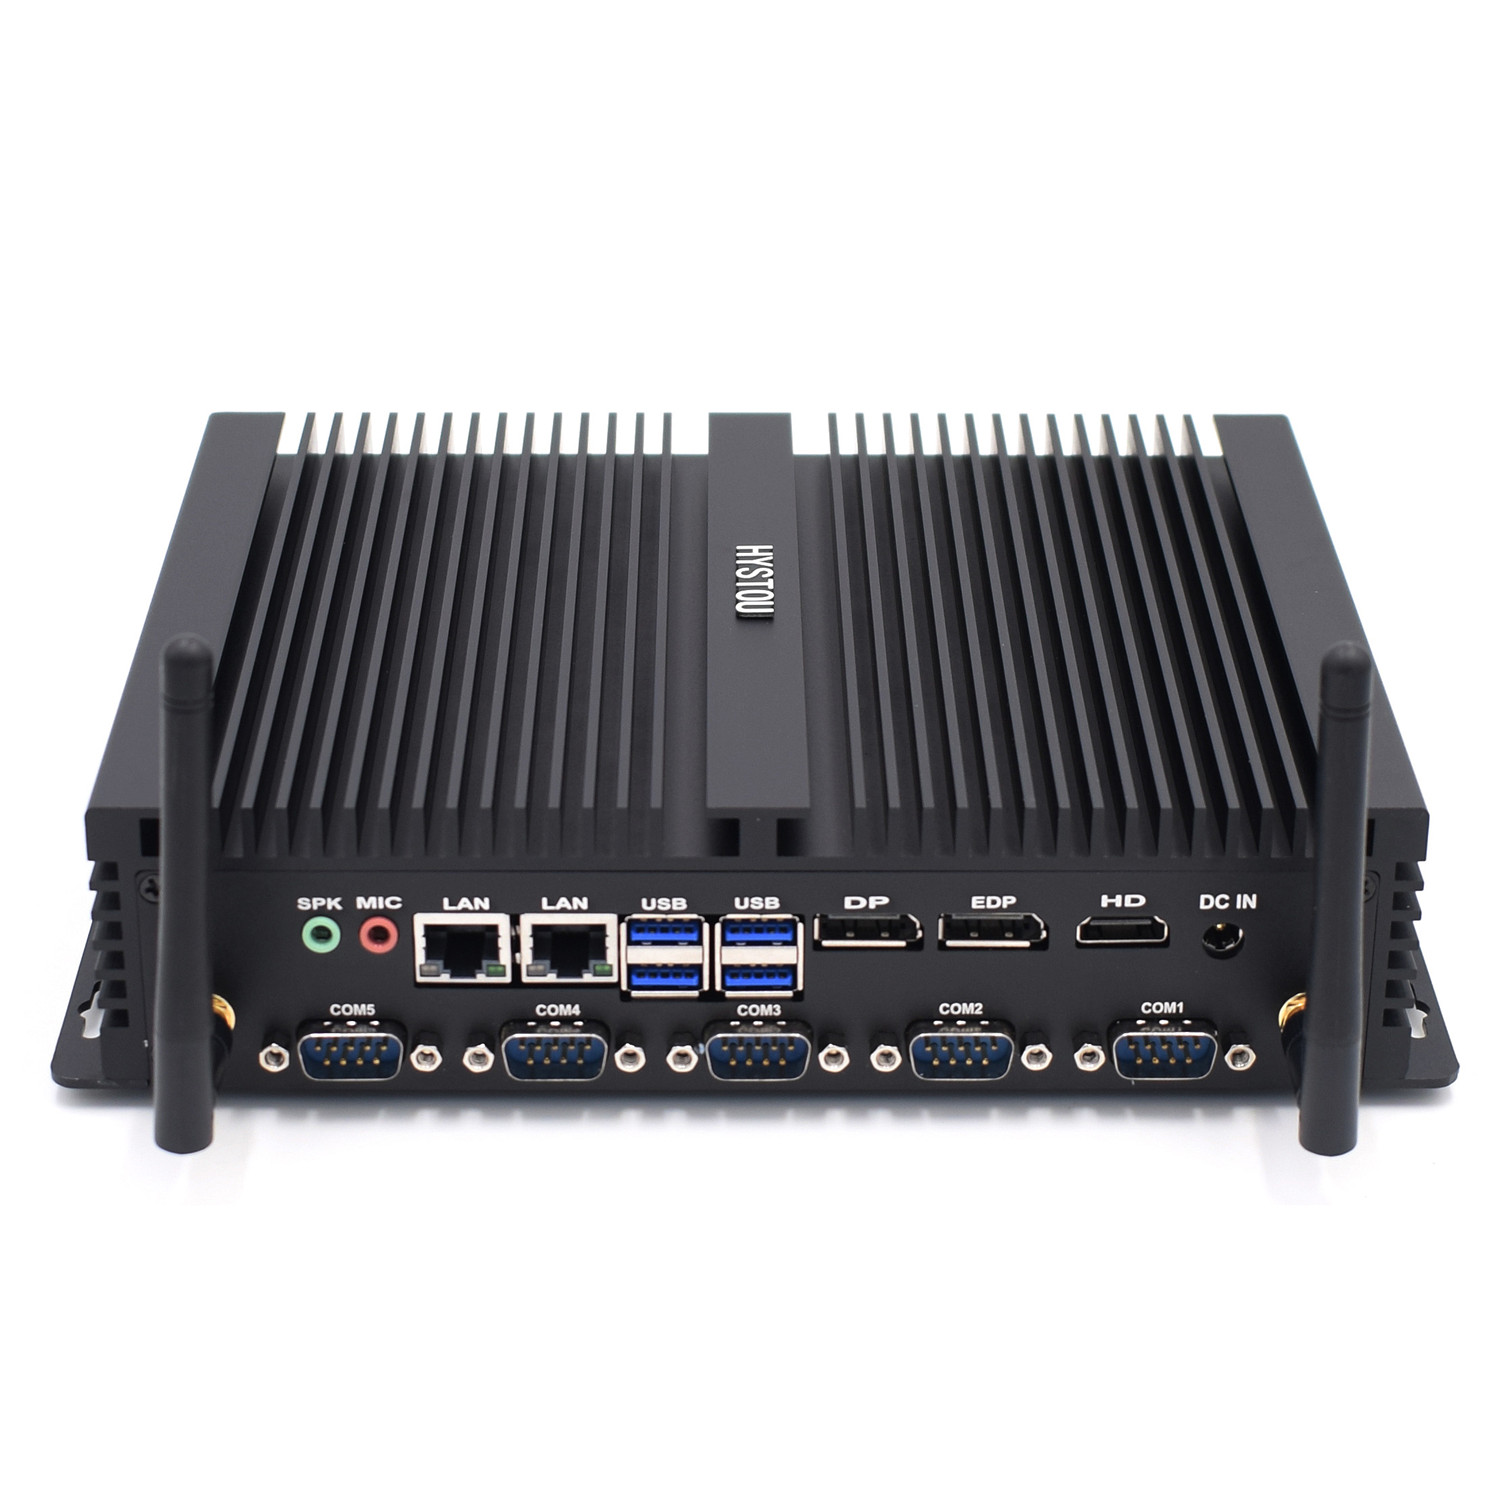 Core I7 8550U/ Core I5 8250U Industrial Mini Pc 2 Intel Lan HDMI DP EDP LPT SIM Quad Core 8th Gen Fanless Computer Server